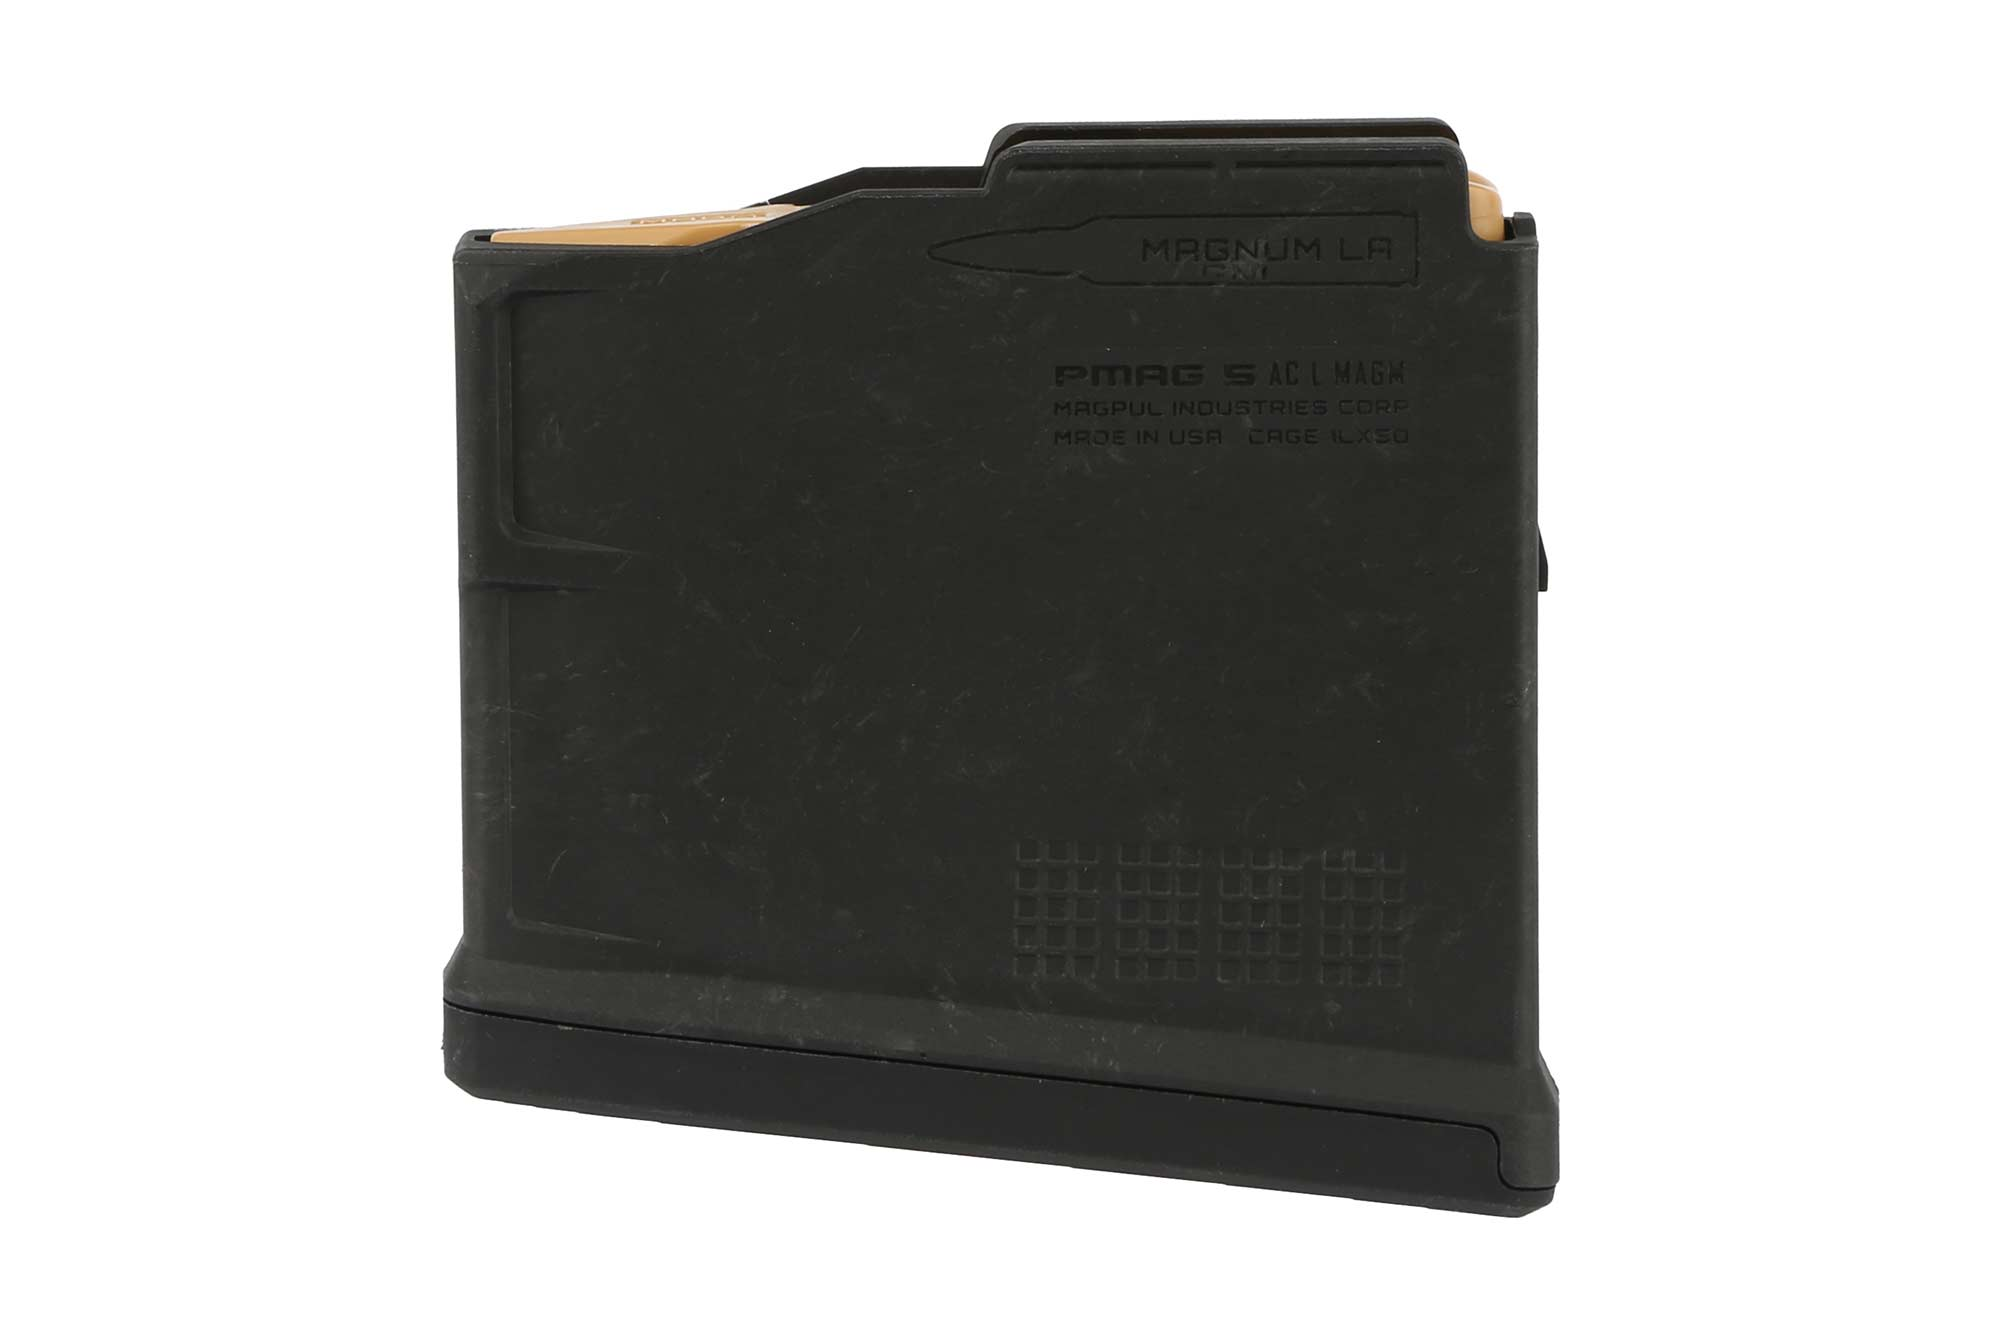 The Magpul PMAG AICS magazine holds 5 rounds of .300 winchester magnum ammunition